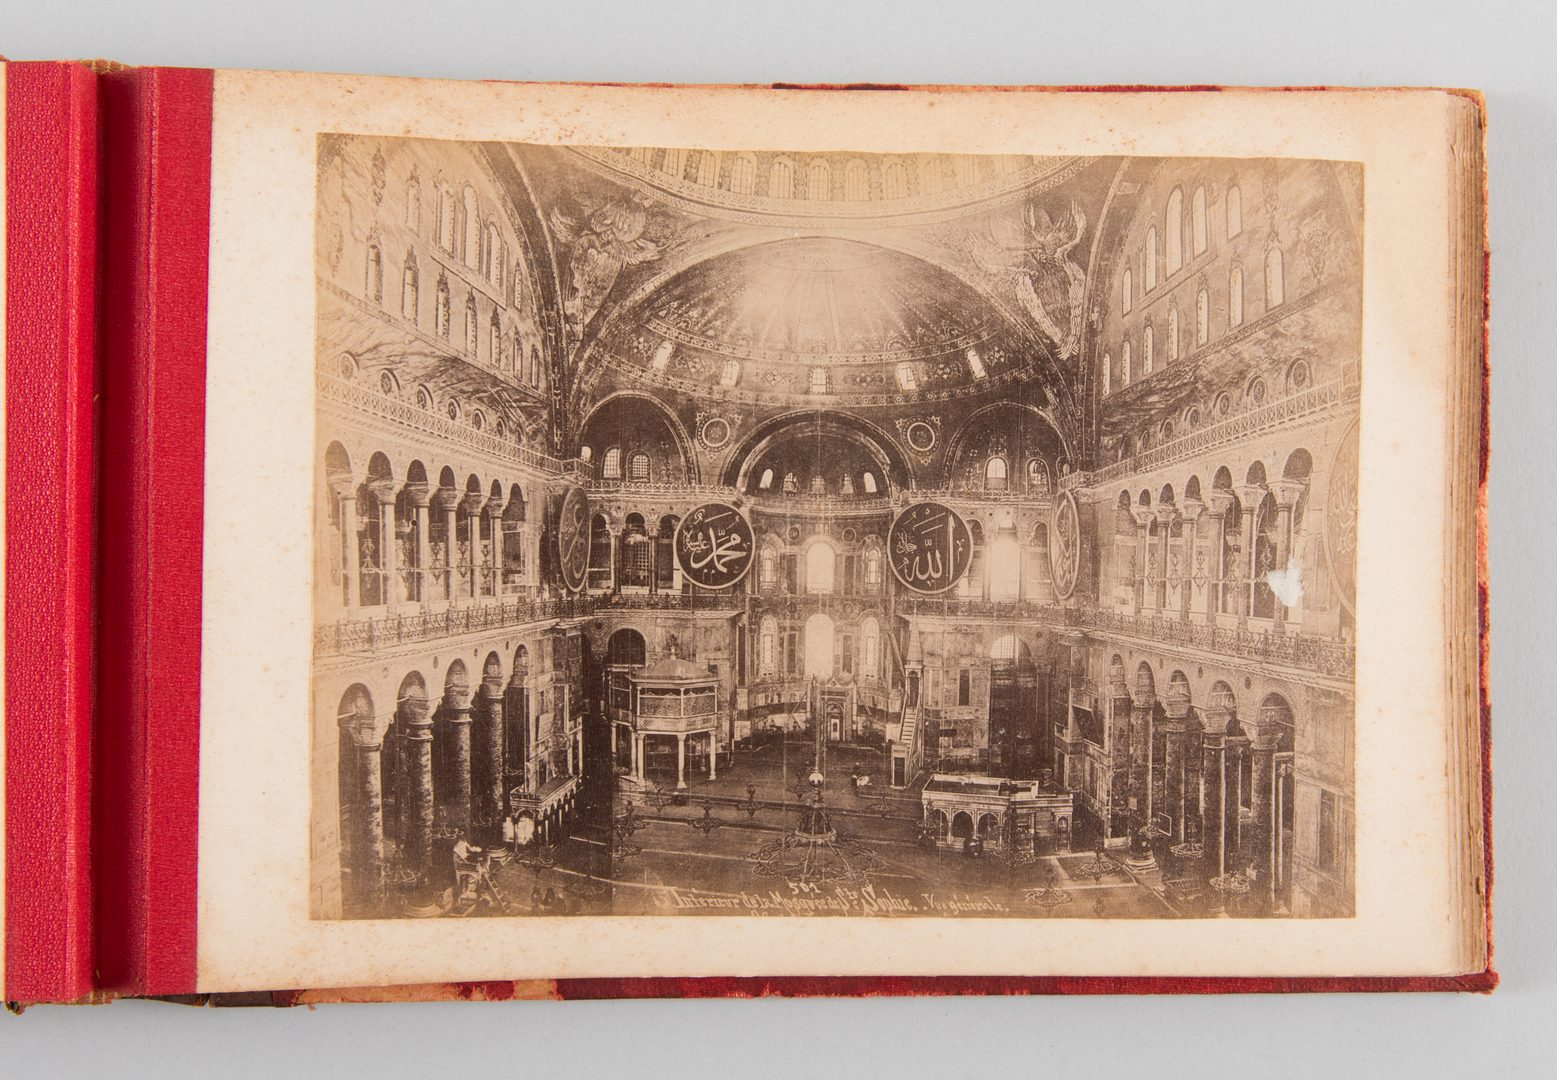 Lot 948: Constantinople Book, Sebah Joaillier Album